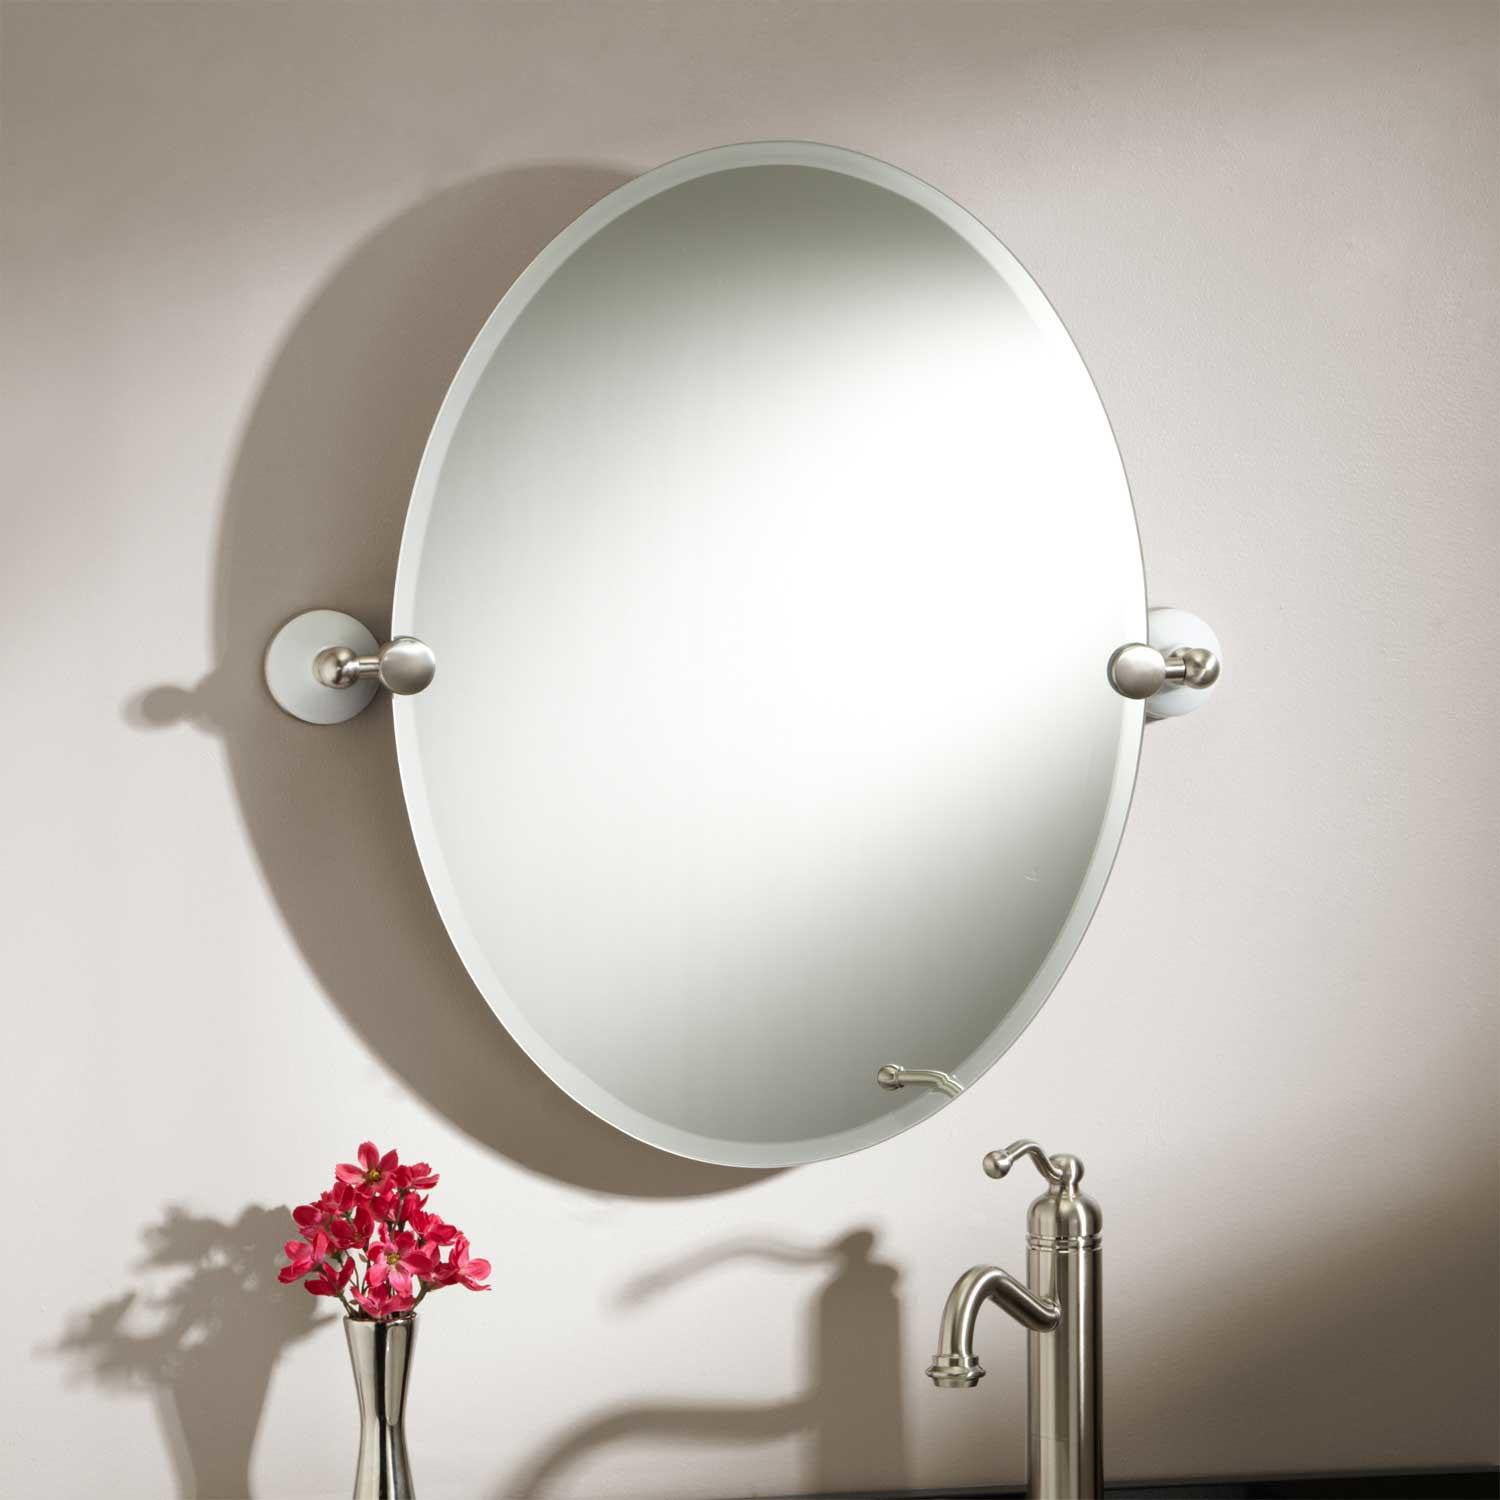 Oval Mirrors Bathroom Silver Oval Mirrors Bathroom Best Decor Things